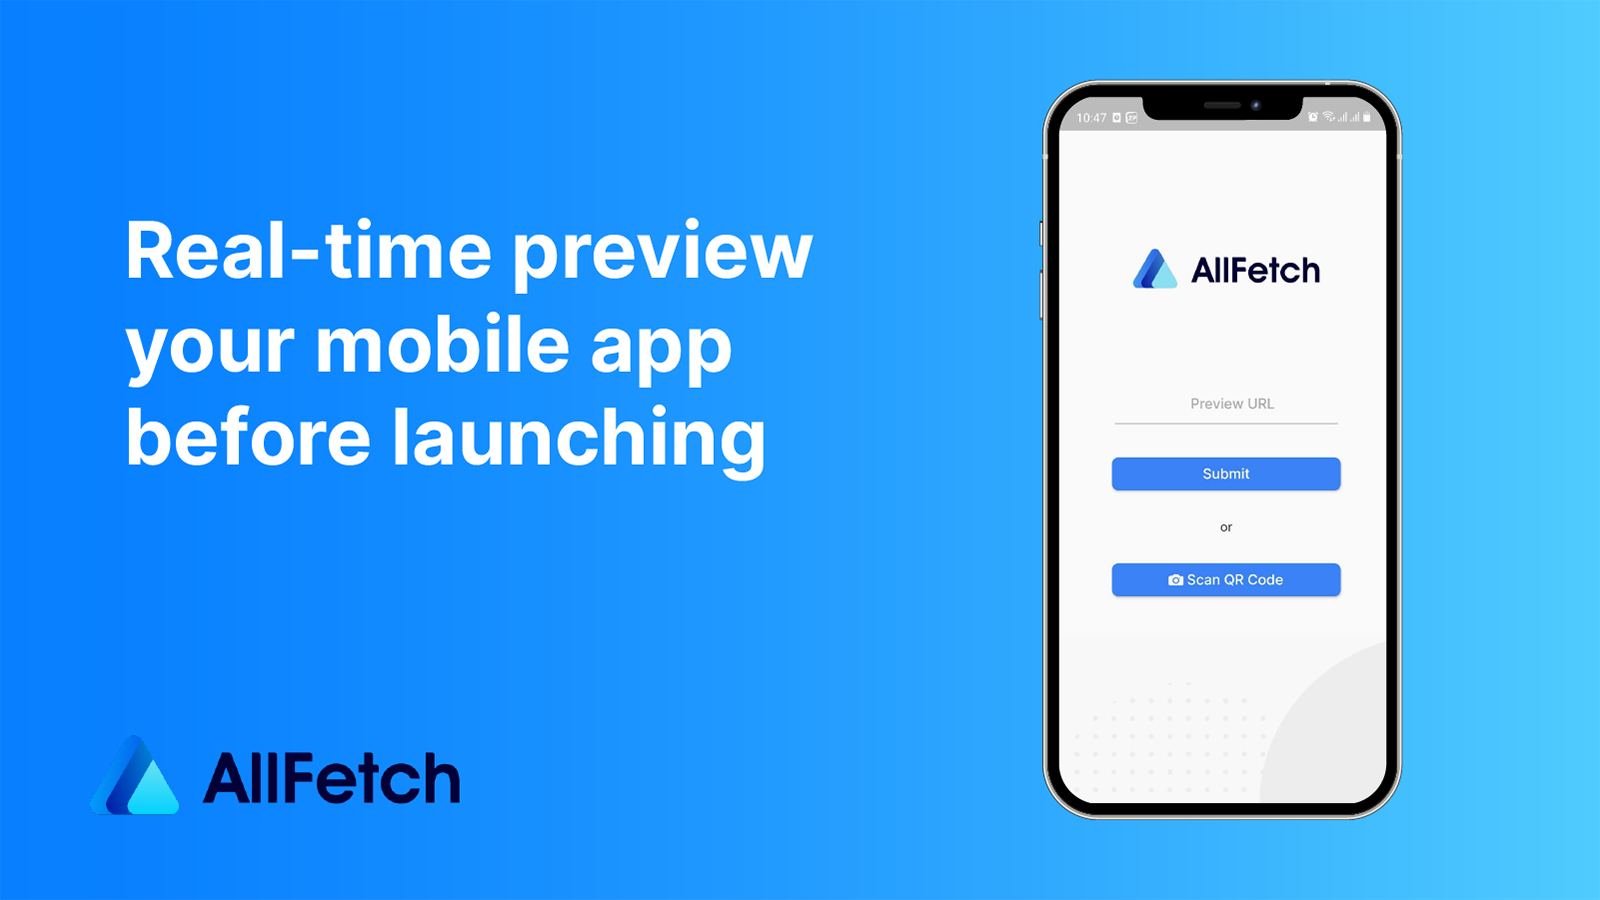 Real-time preview your mobile app before launching